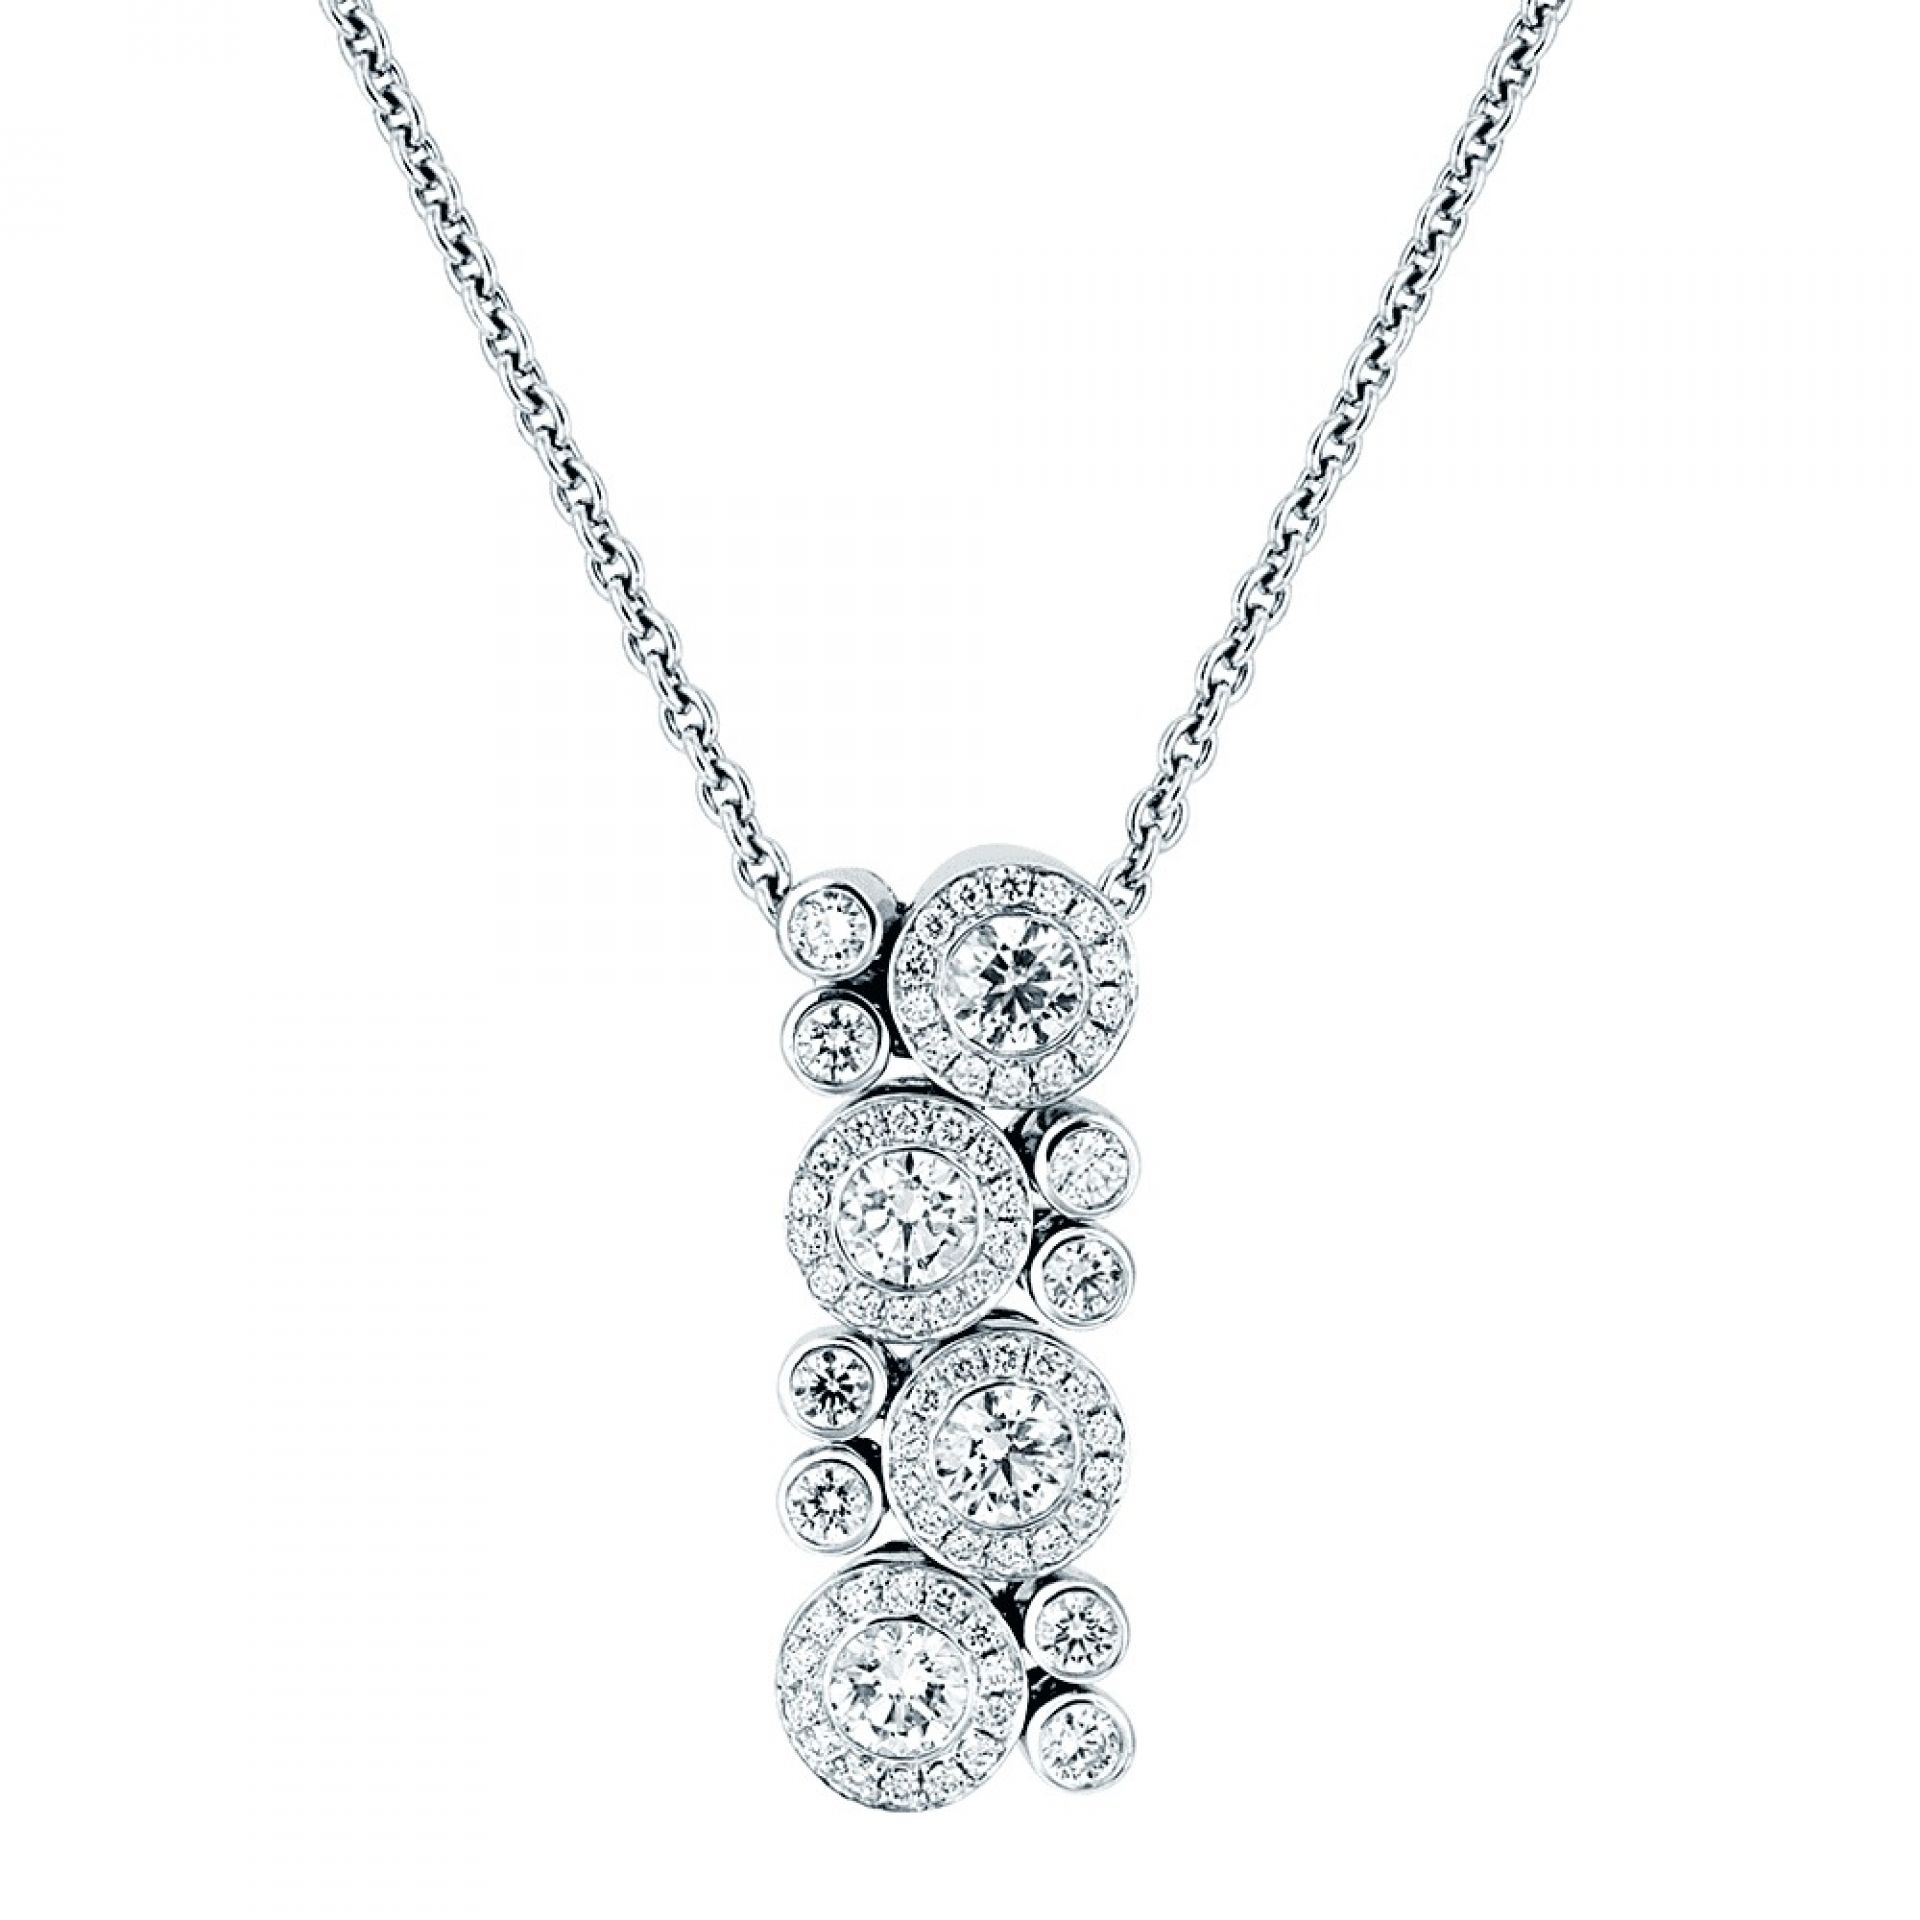 18CT WHITE GOLD DIAMOND CLUSTER NECKLACE